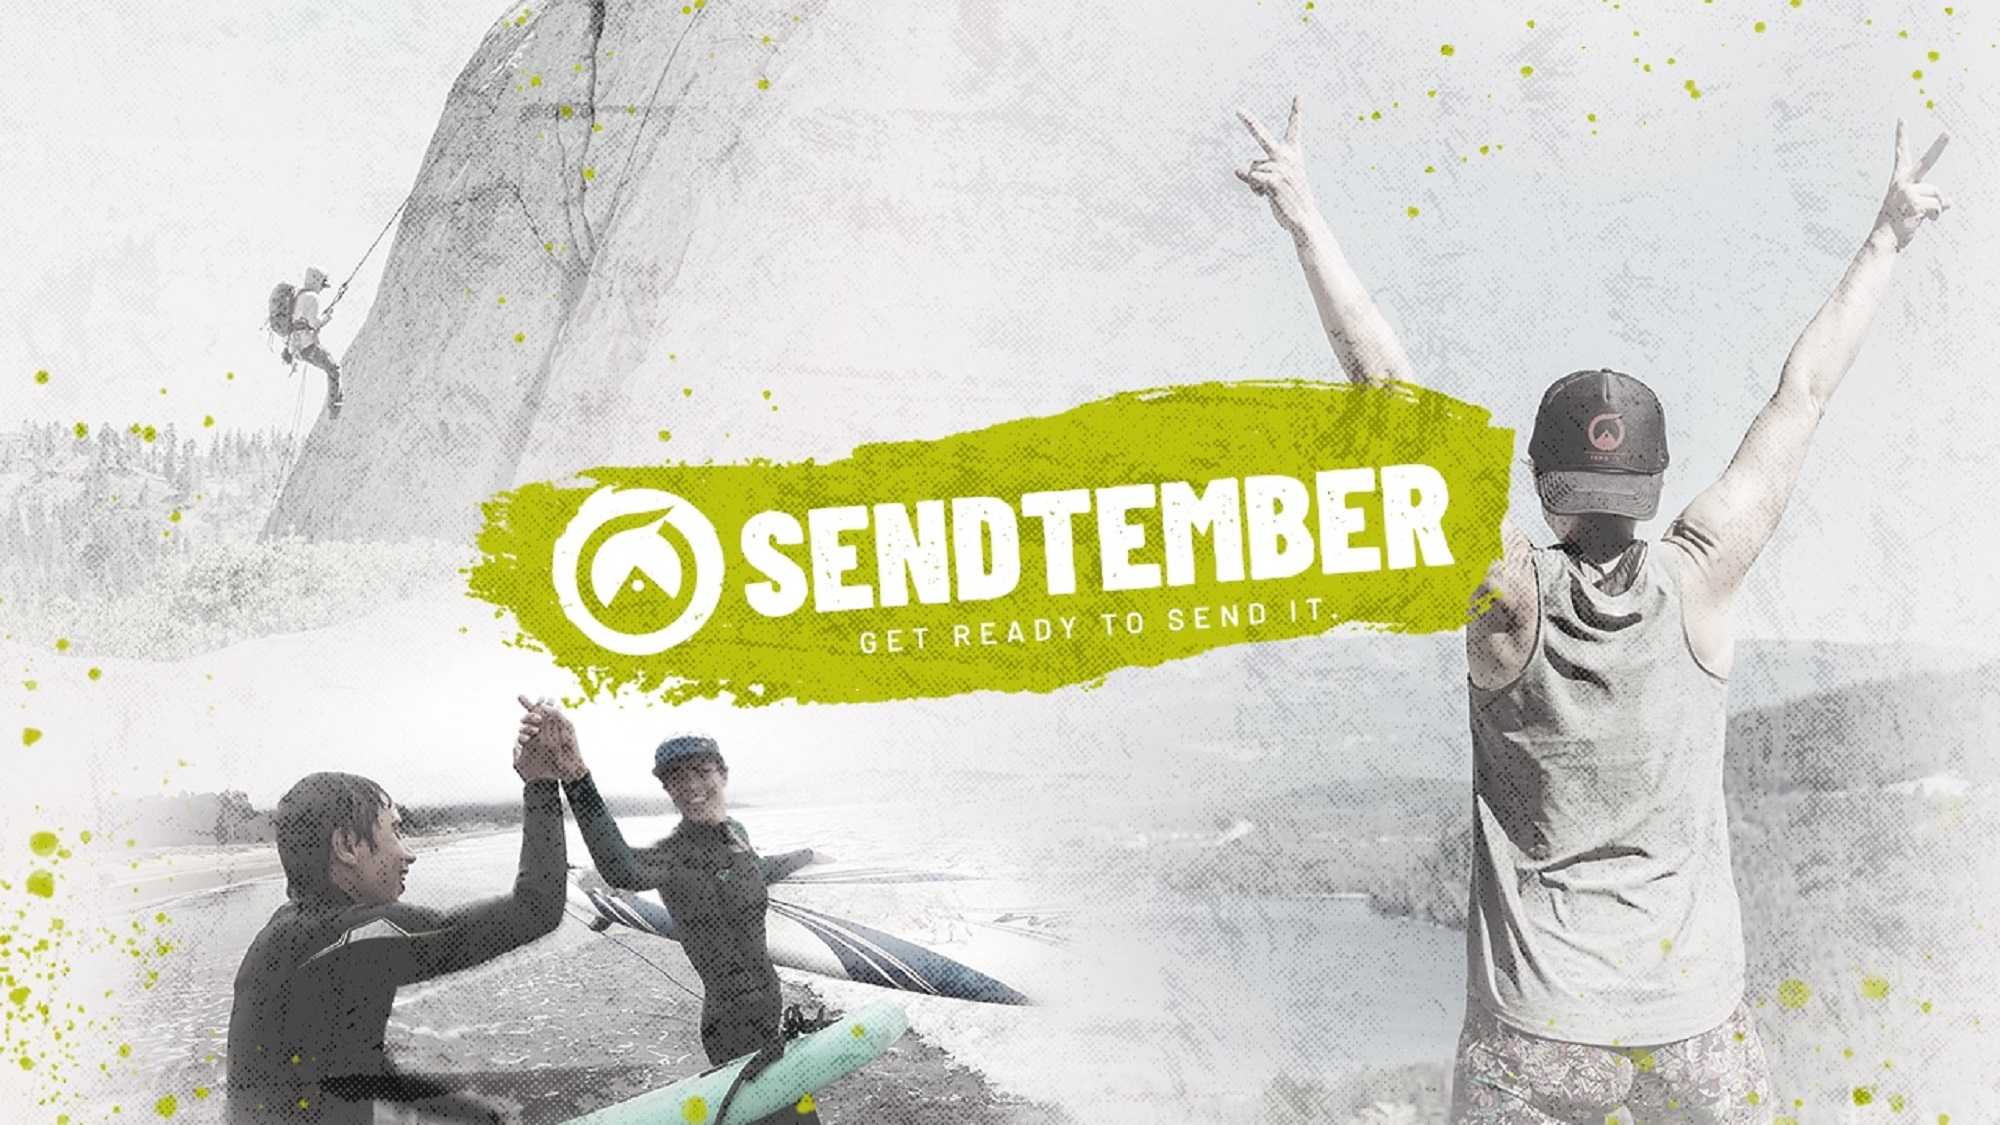 The SENDtember campaign aims to raise $80,000 for the Send It Foundation